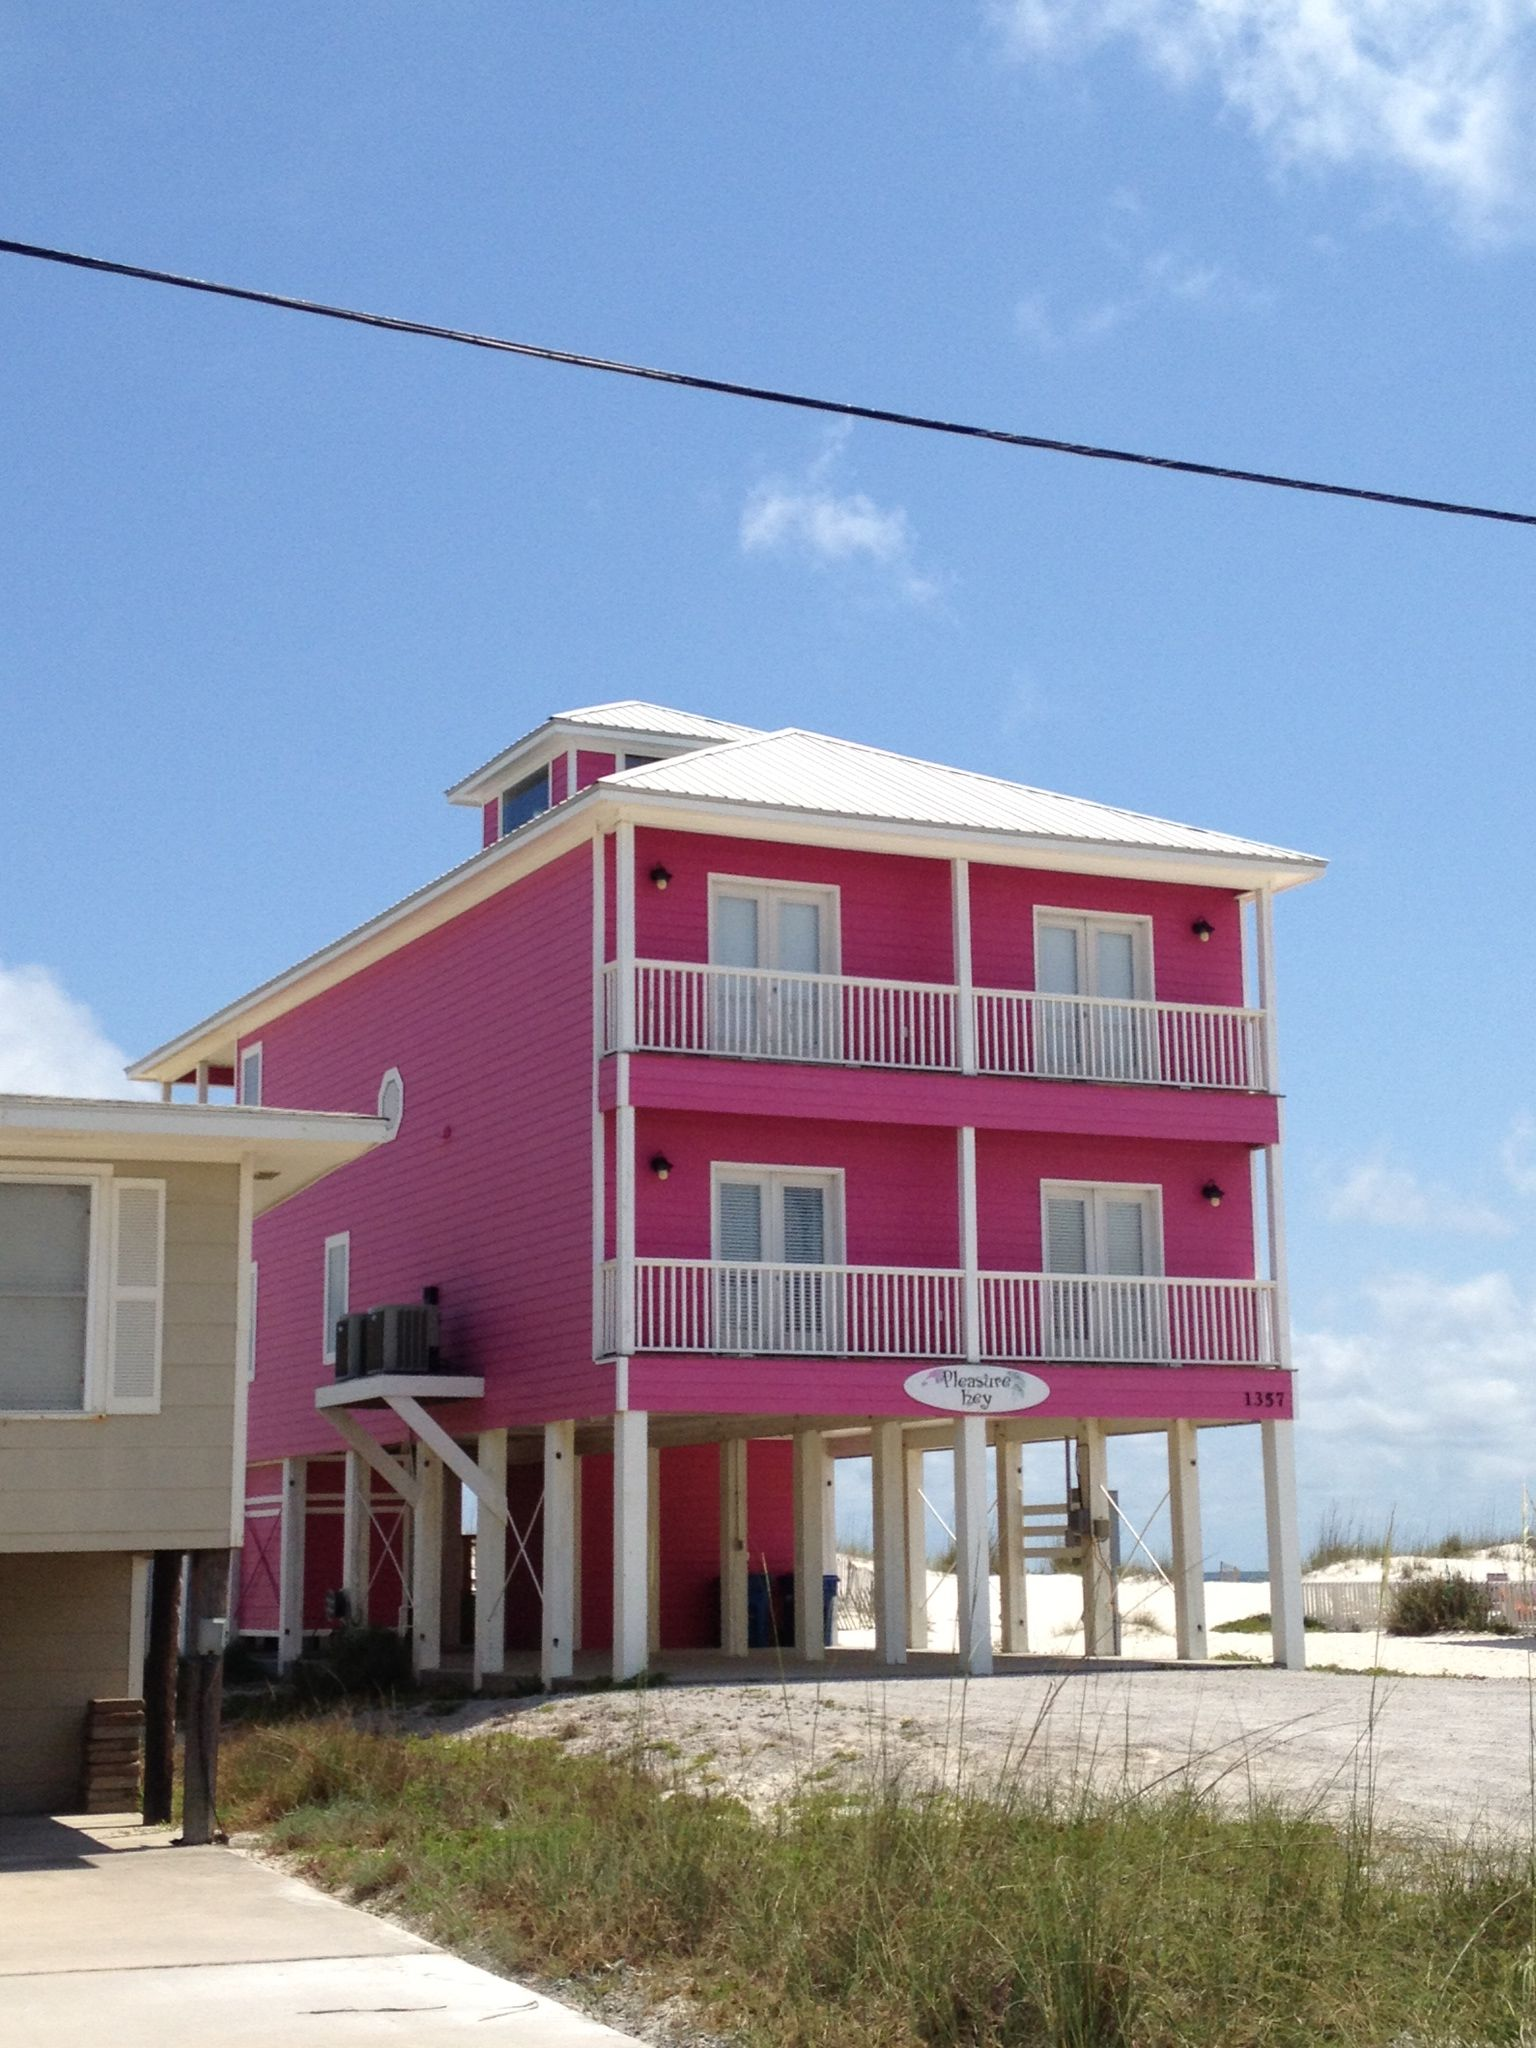 Hot Pink Beach House In Gulf Shores Alabama For Sale